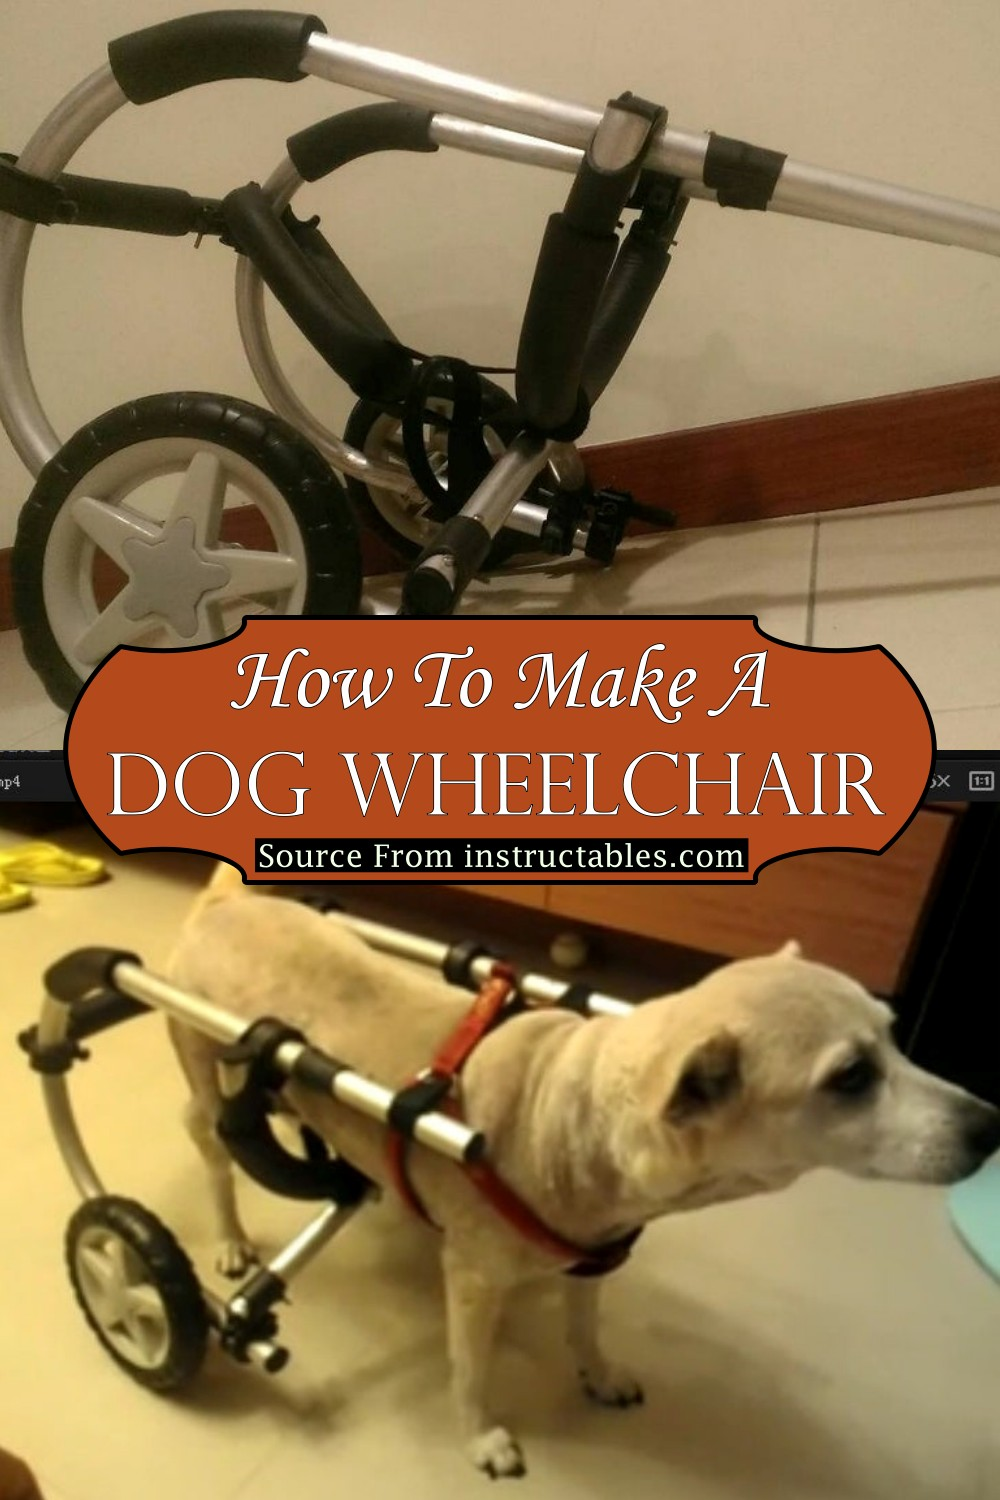 How To Make A Dog Wheelchair 1